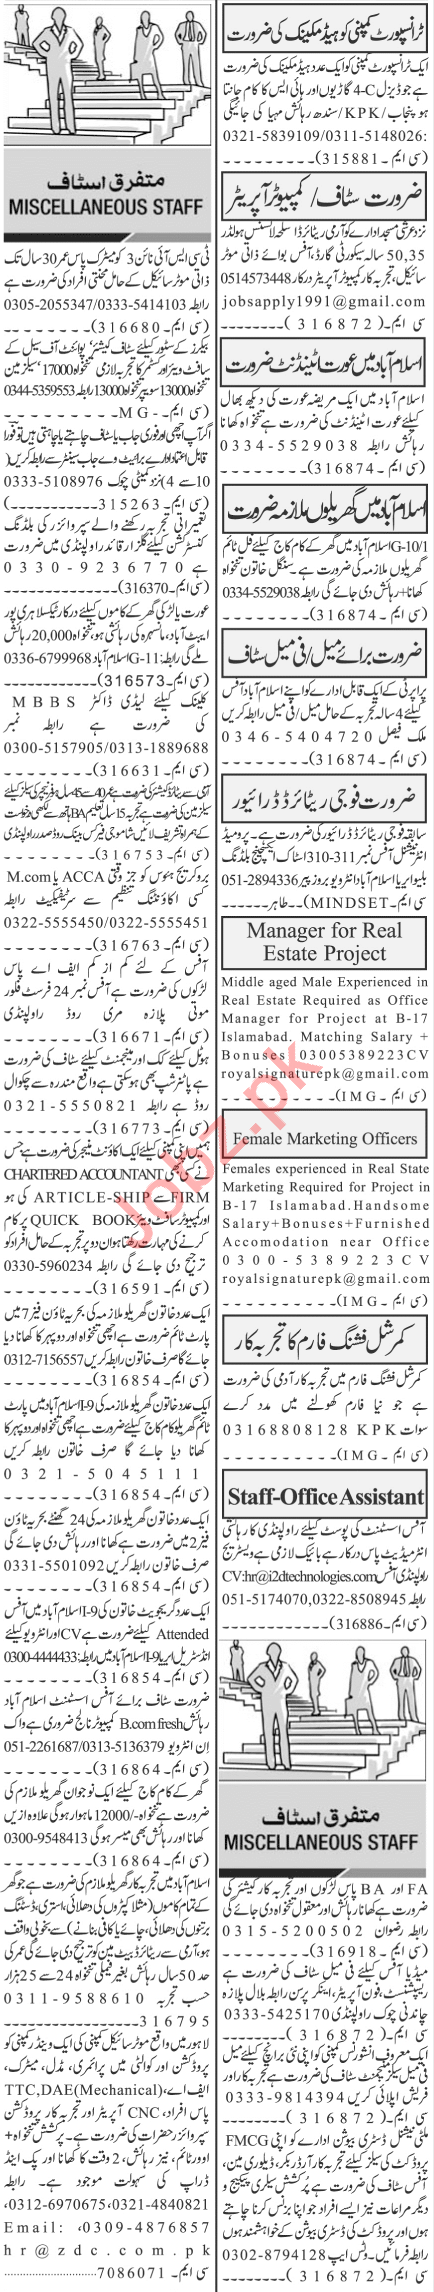 Jang Sunday Classified Ads 30 Aug 2020 for Office Staff